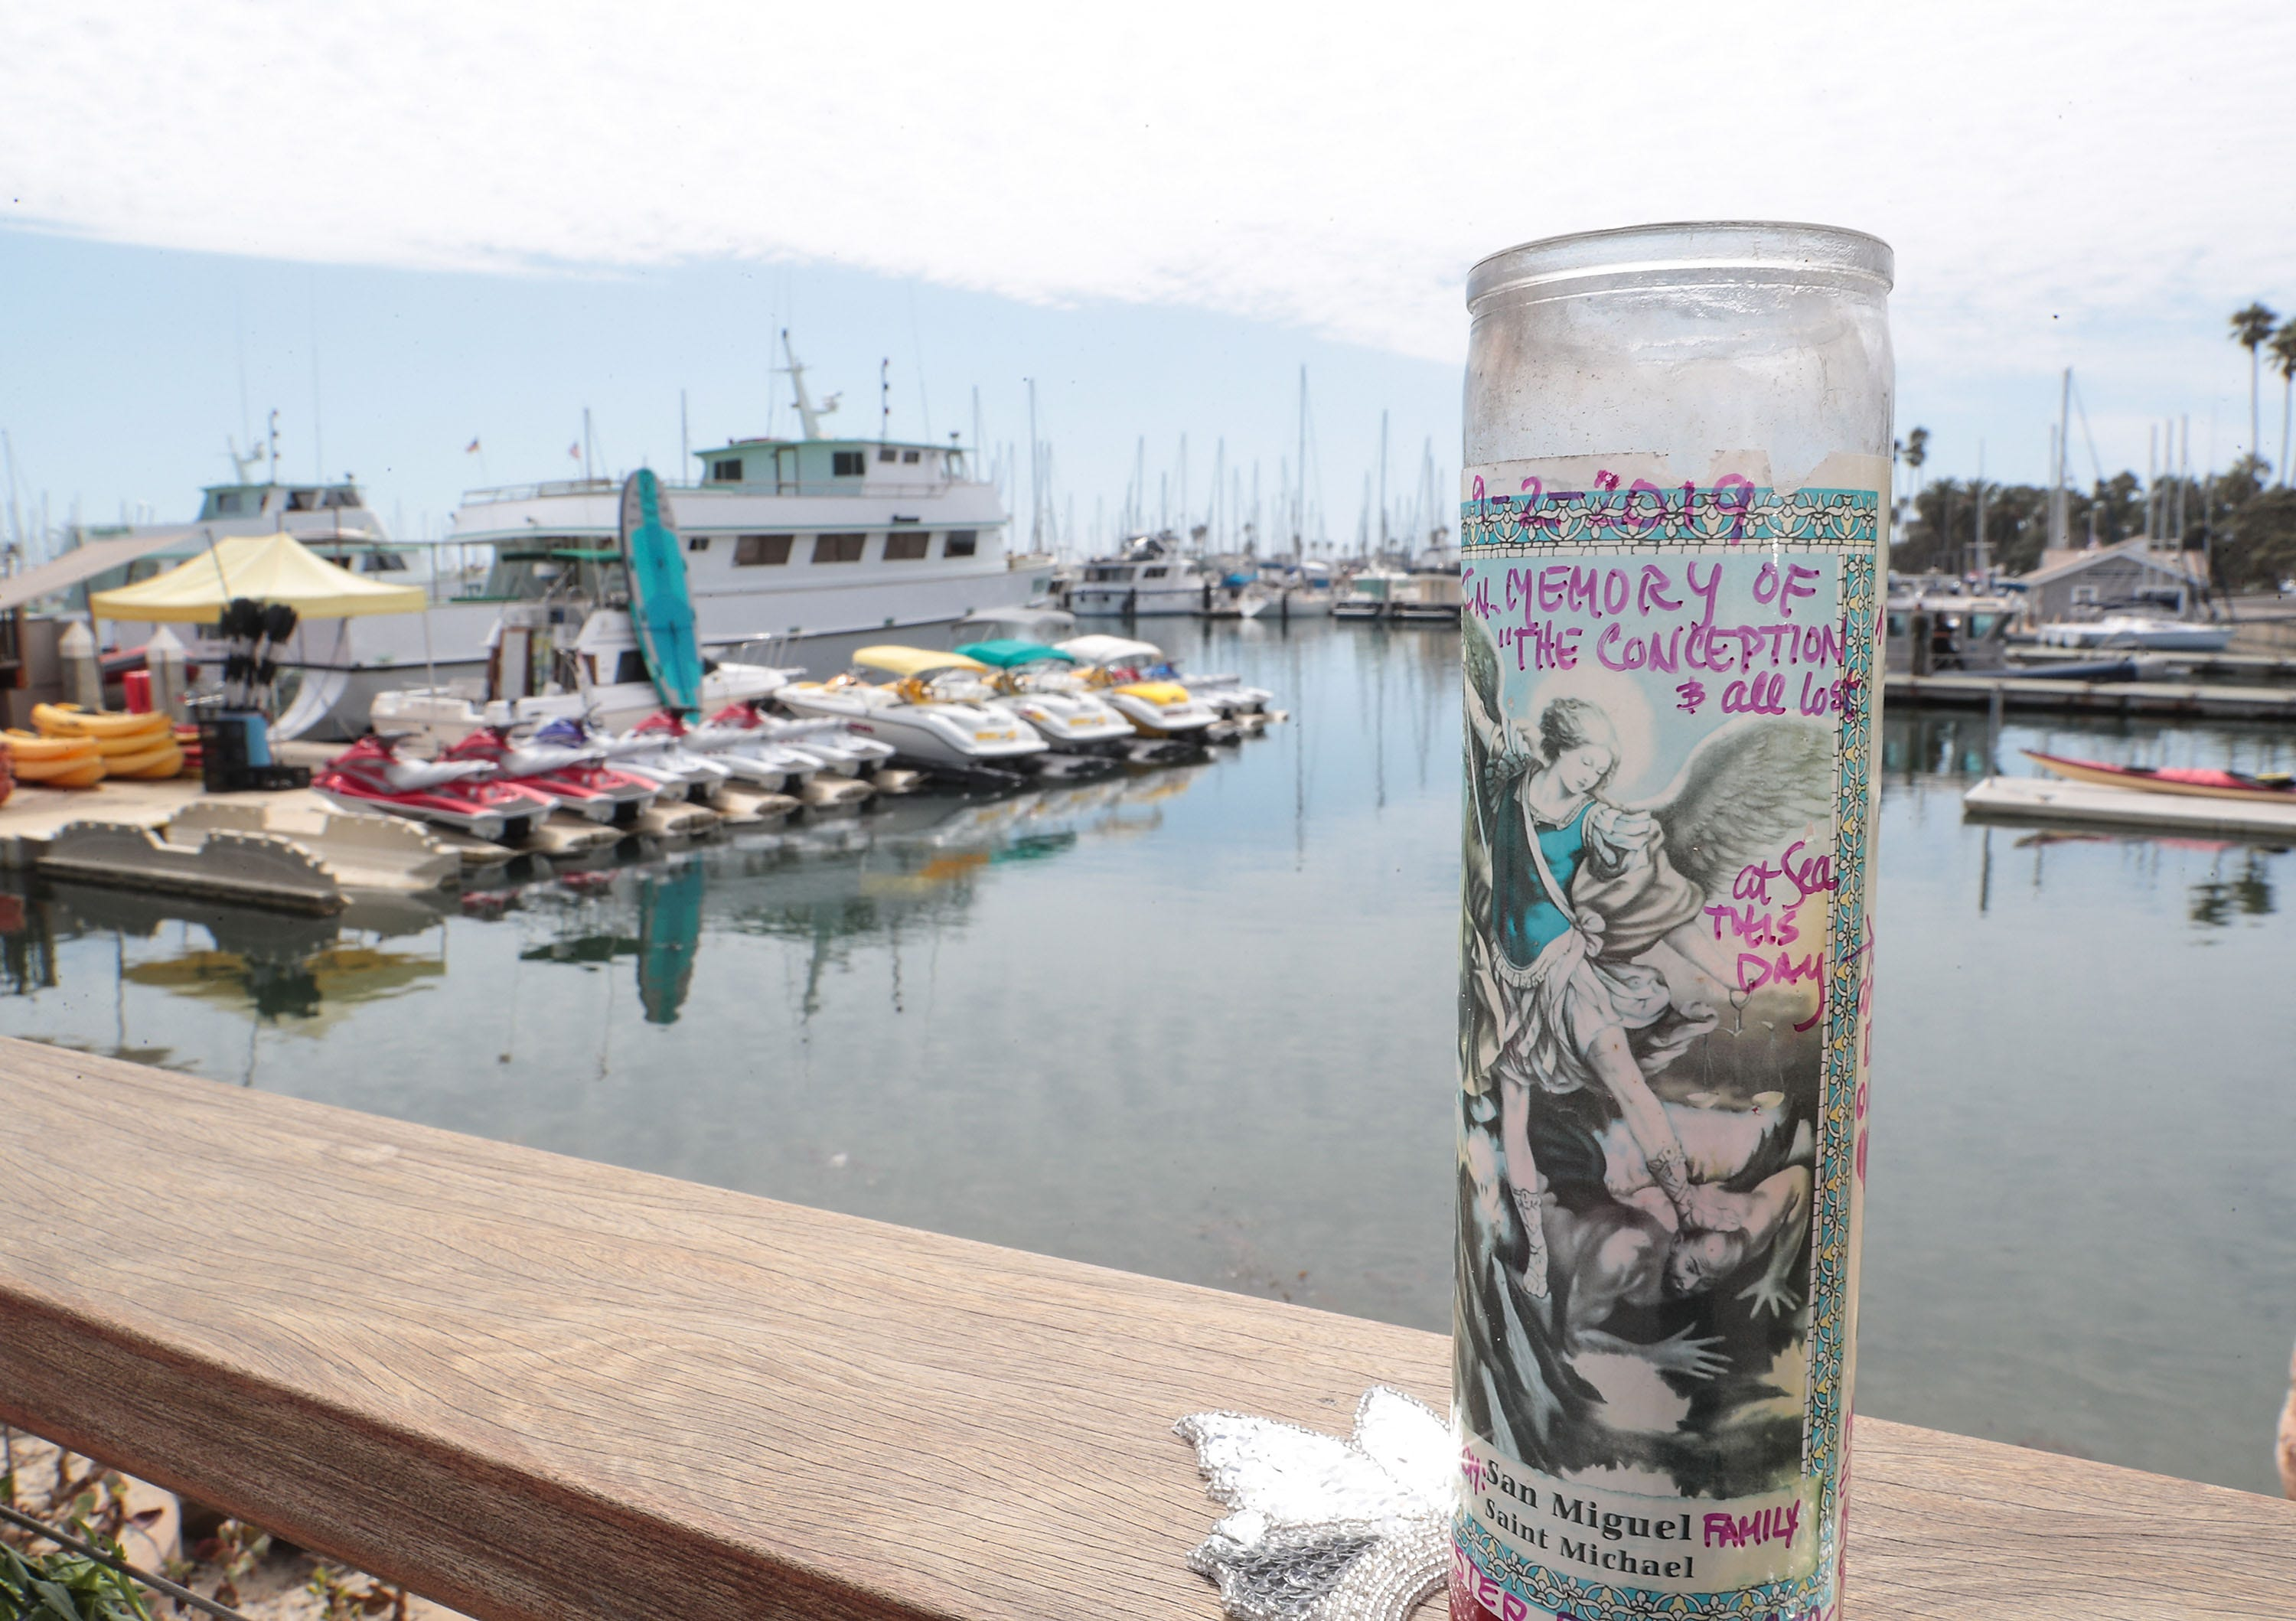 California boat company Truth Aquatics indefinitely suspends tours following deadly Labor Day fire